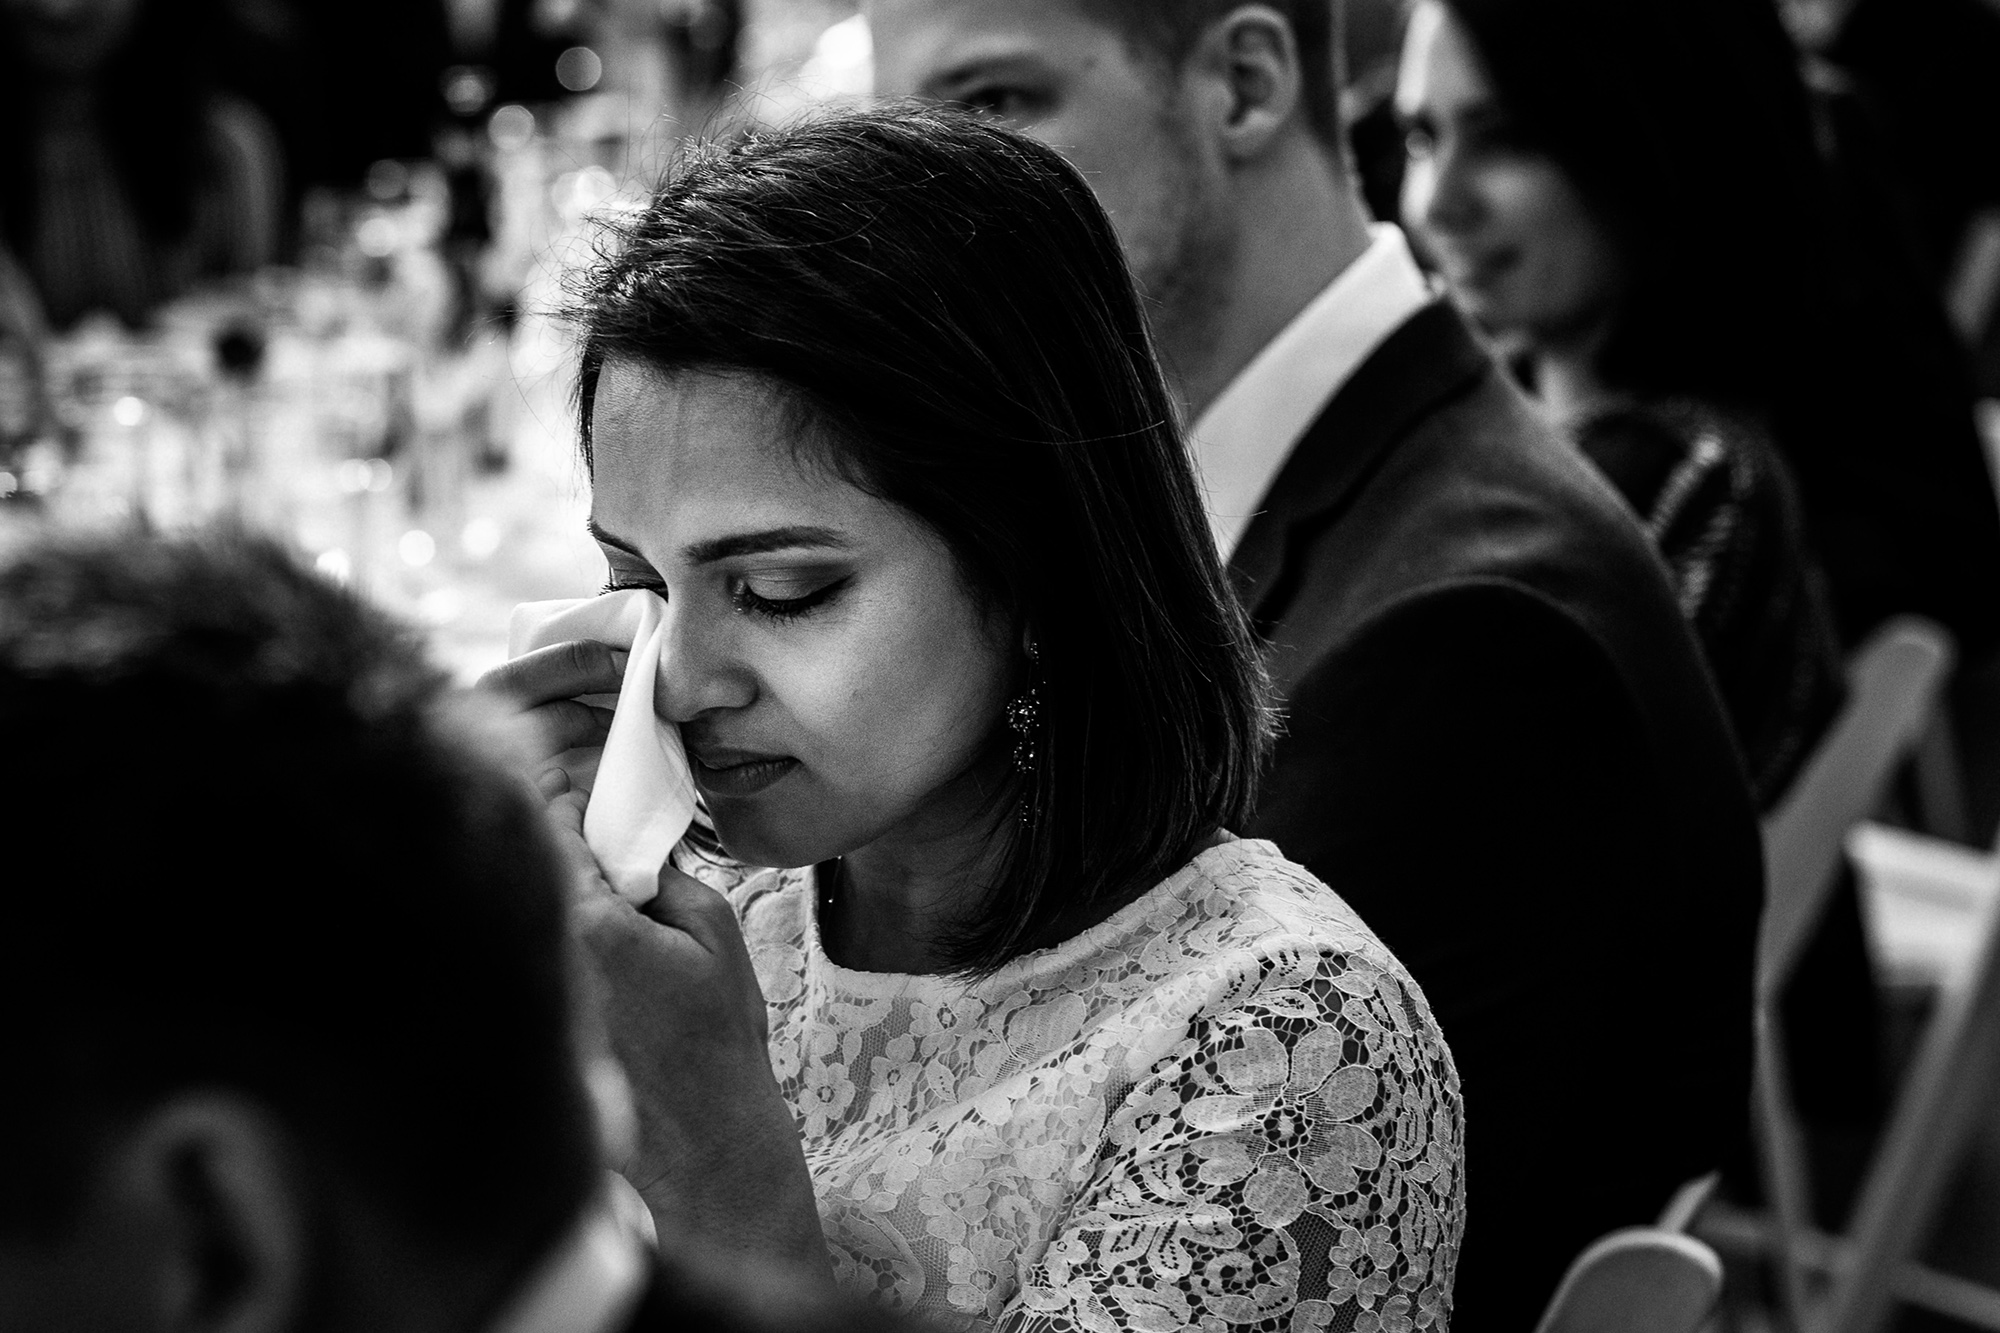 A guest drying her eyes with a napkin as she cries during the speeches